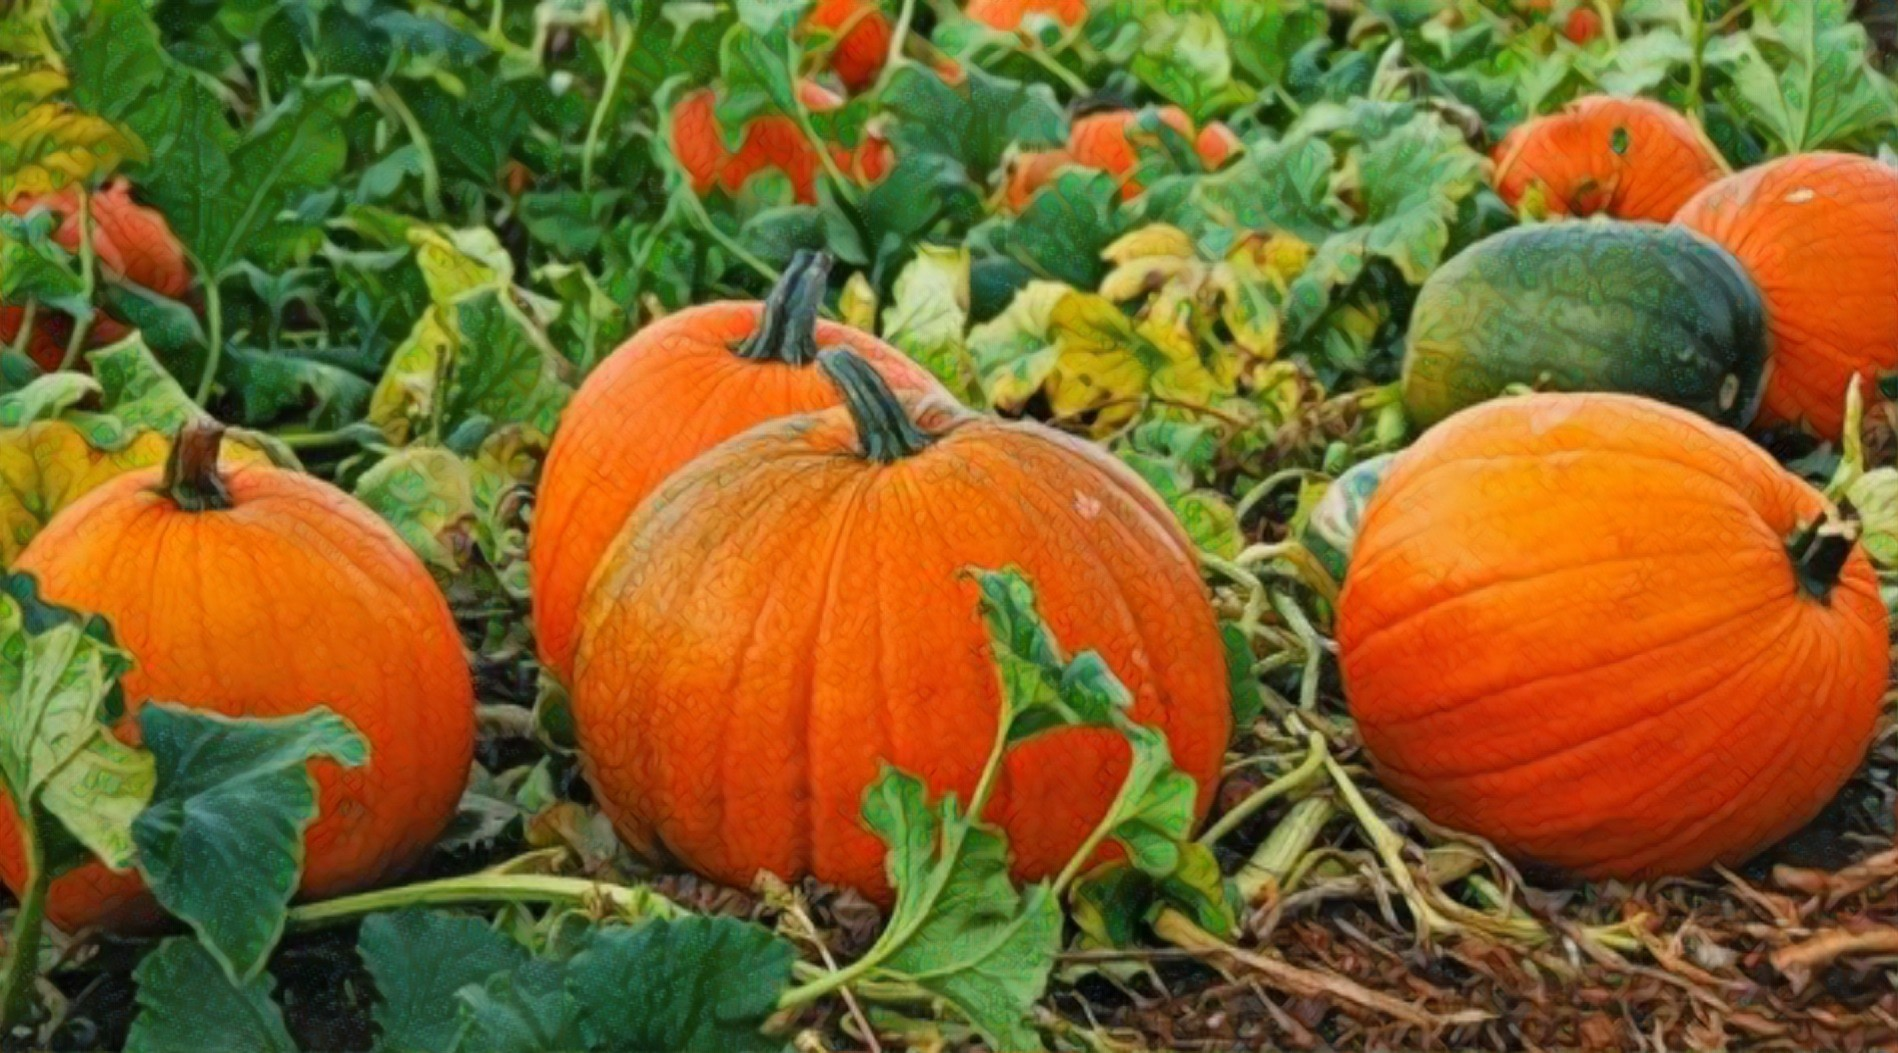 Sprinkler irrigation may affect pumpkin pollination & reduce agricultural yield